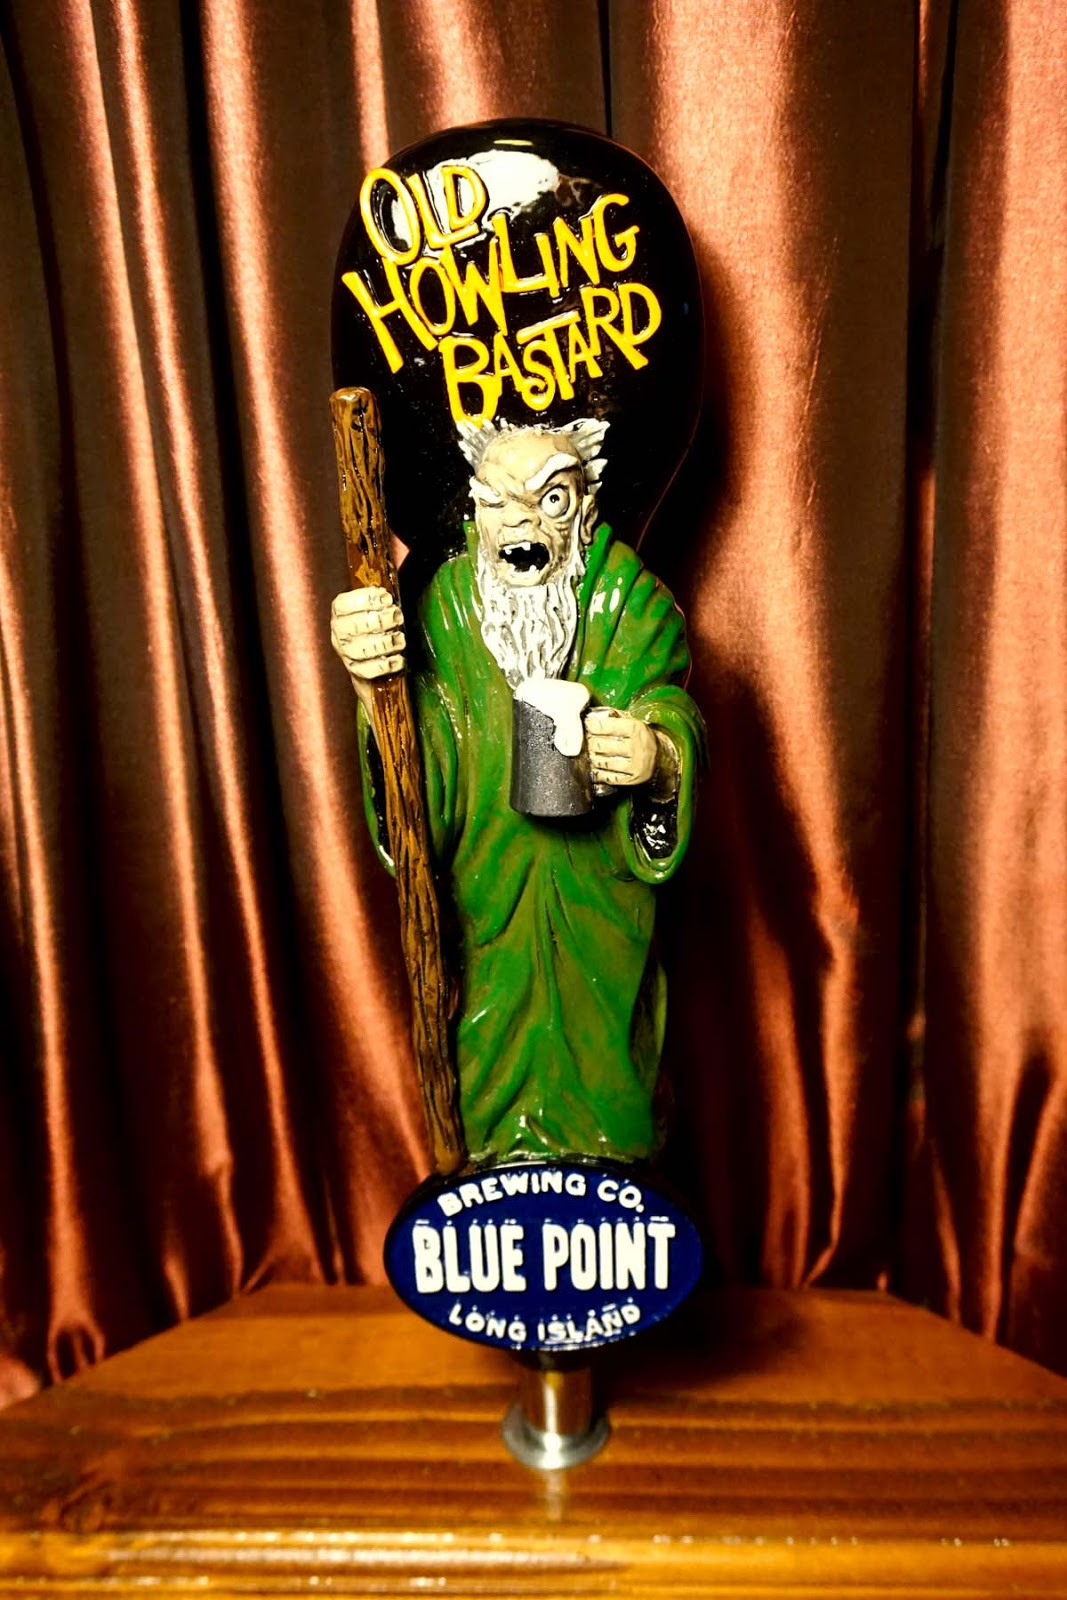 Amazing Tap Handles Tap Handle 556 Blue Point Old